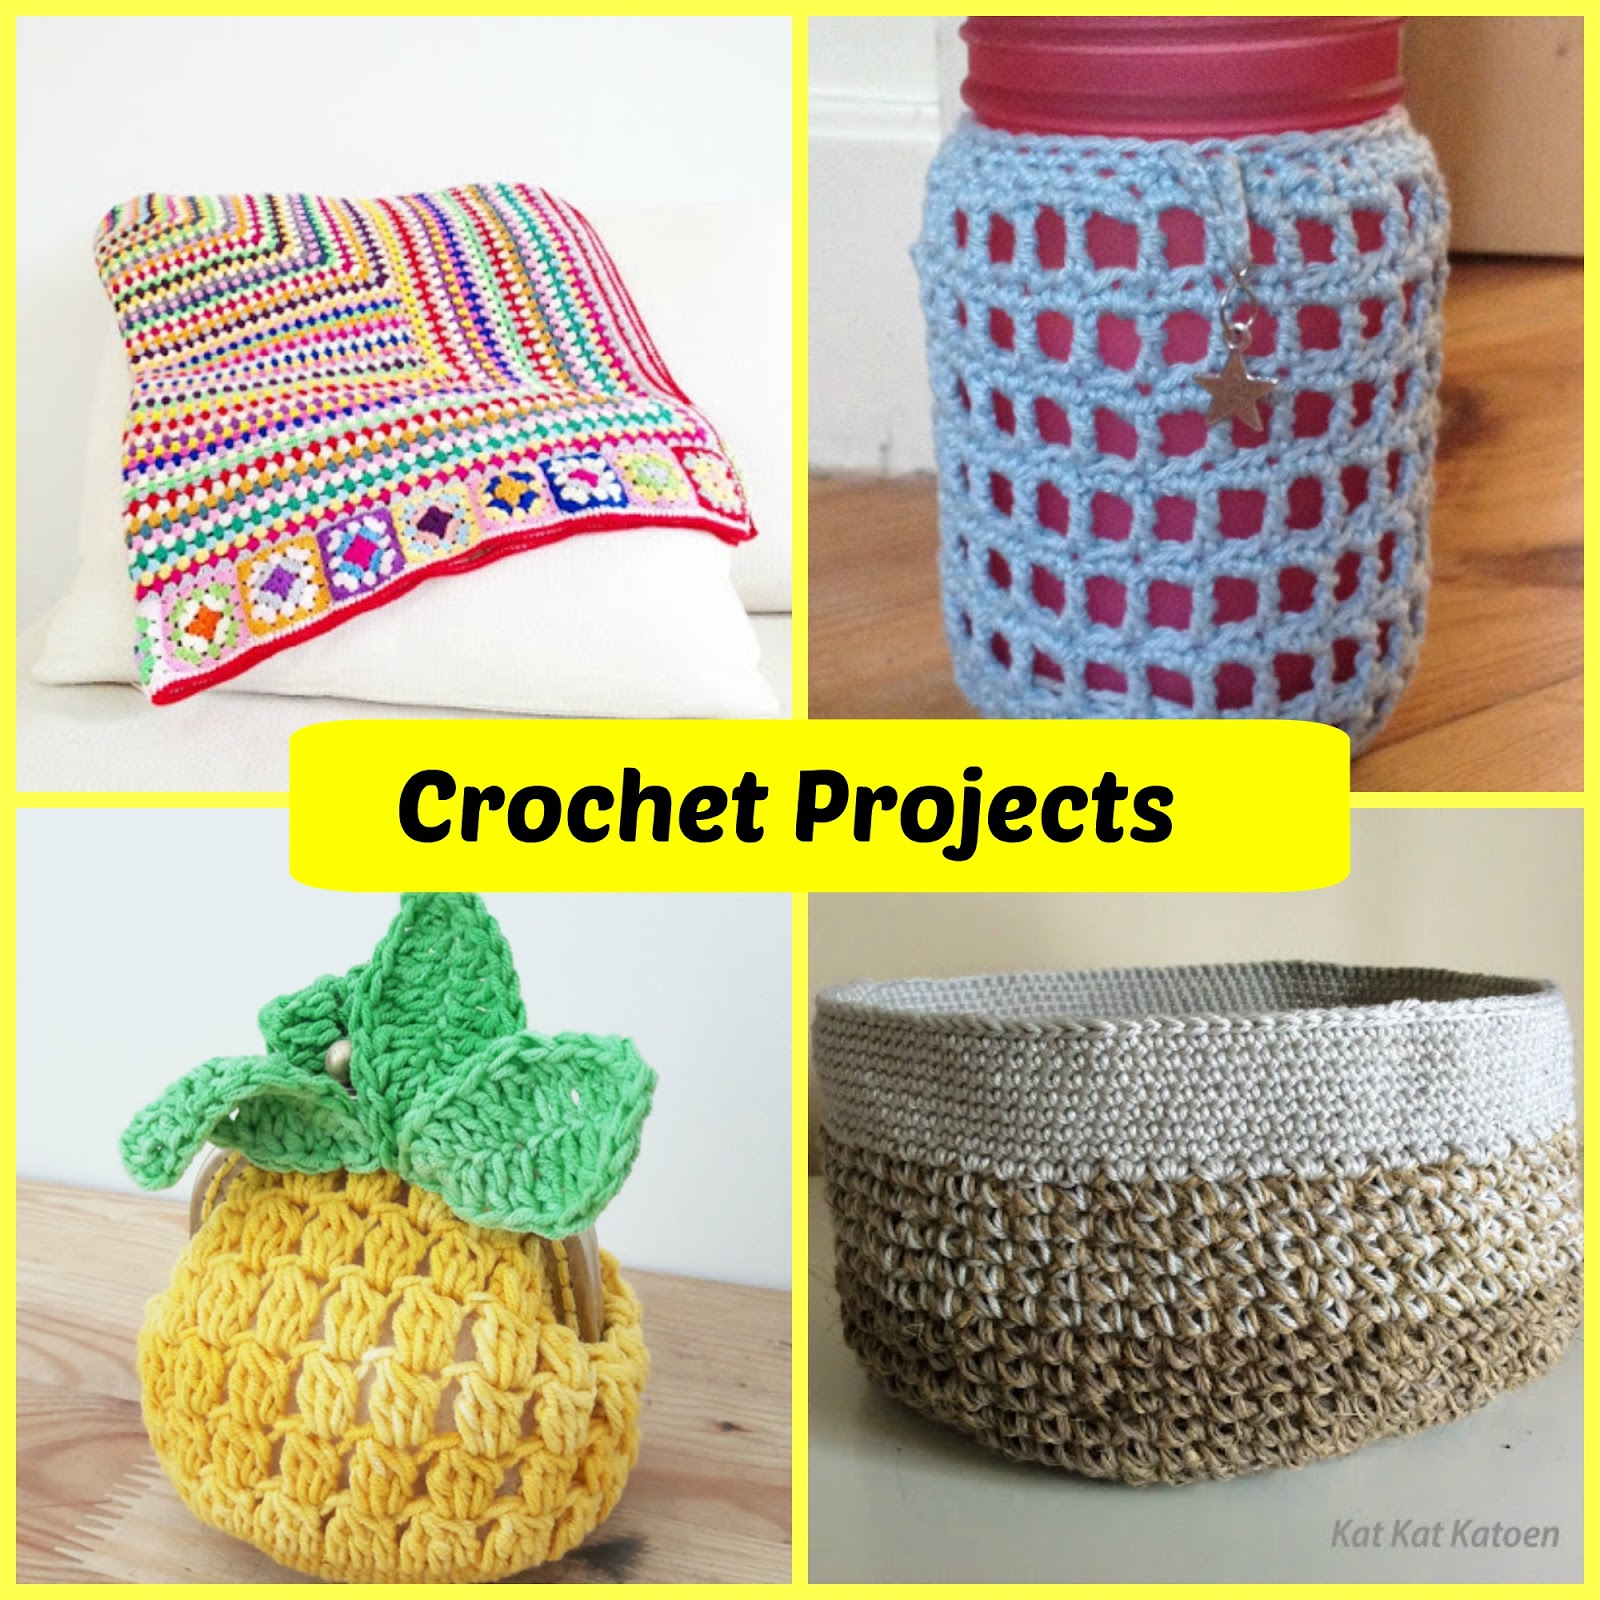 Crocheting Uses : ... Success: Saturday Spotlight - Use What Youve Got and Crochet Projects